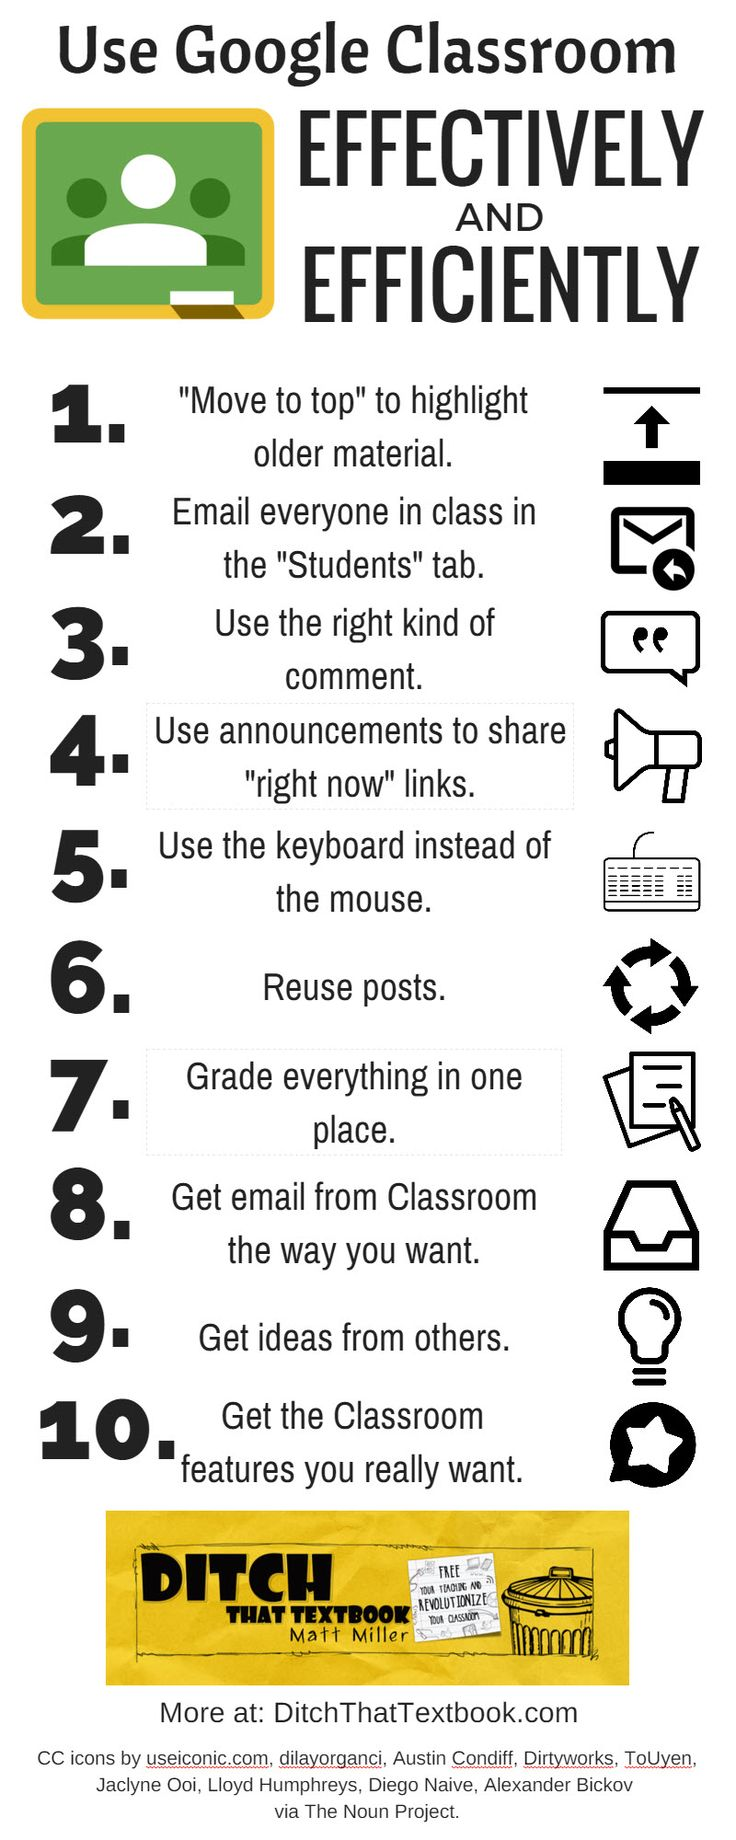 Google Classroom can be even more powerful with a few tips and strategies to make it efficient and effective. via DitchThatTextbook.com